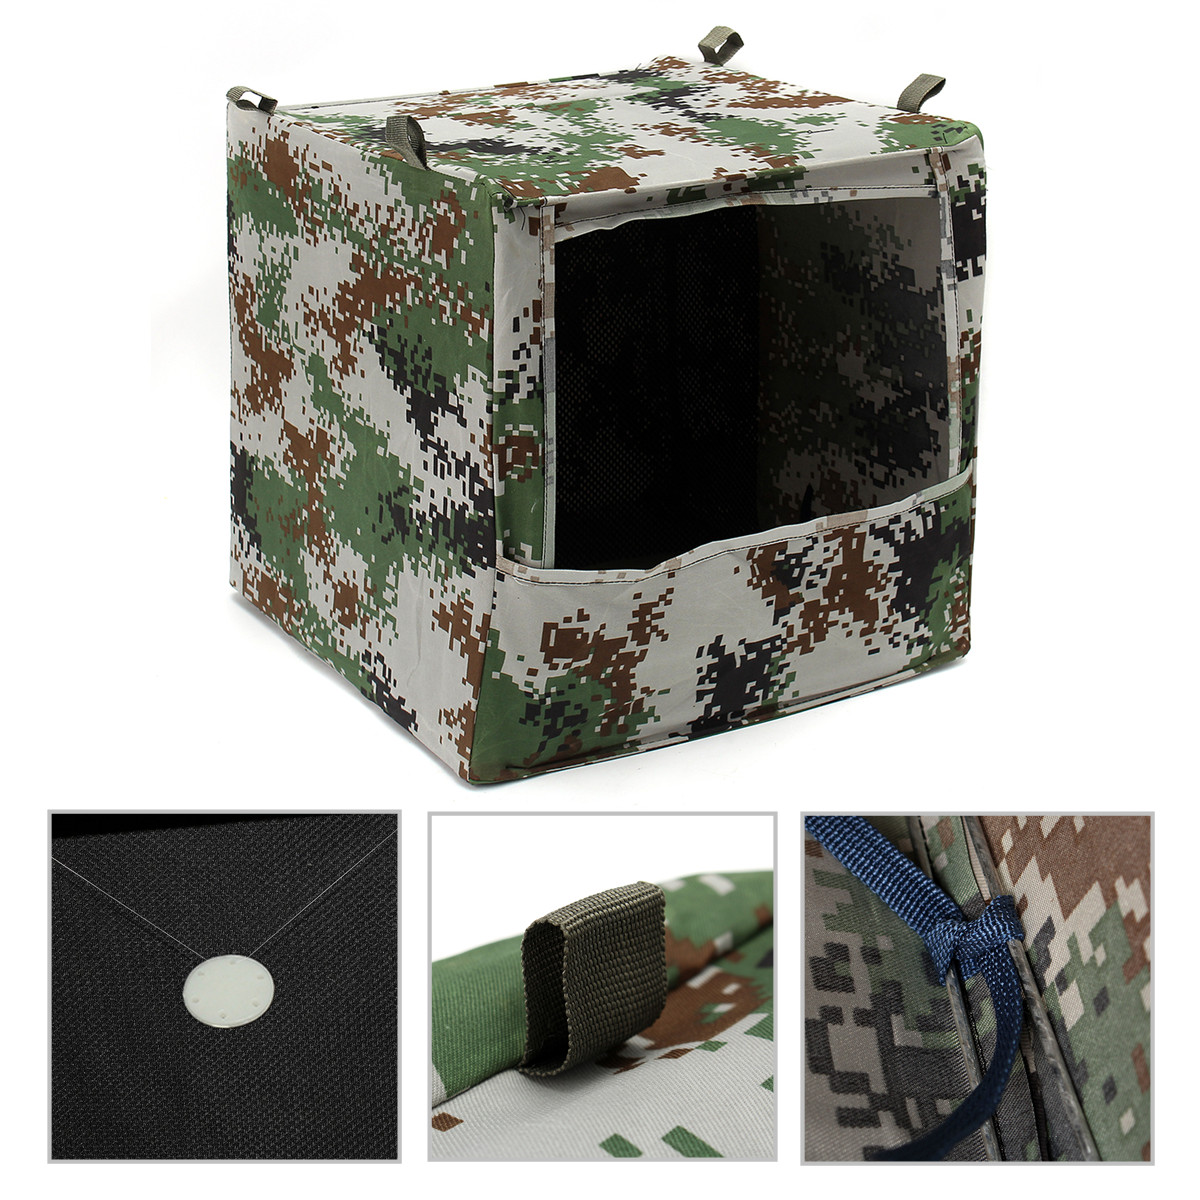 Hunting Portable Foldable Camouflage Box-type Airsoft Gun Shooting Game Target Case